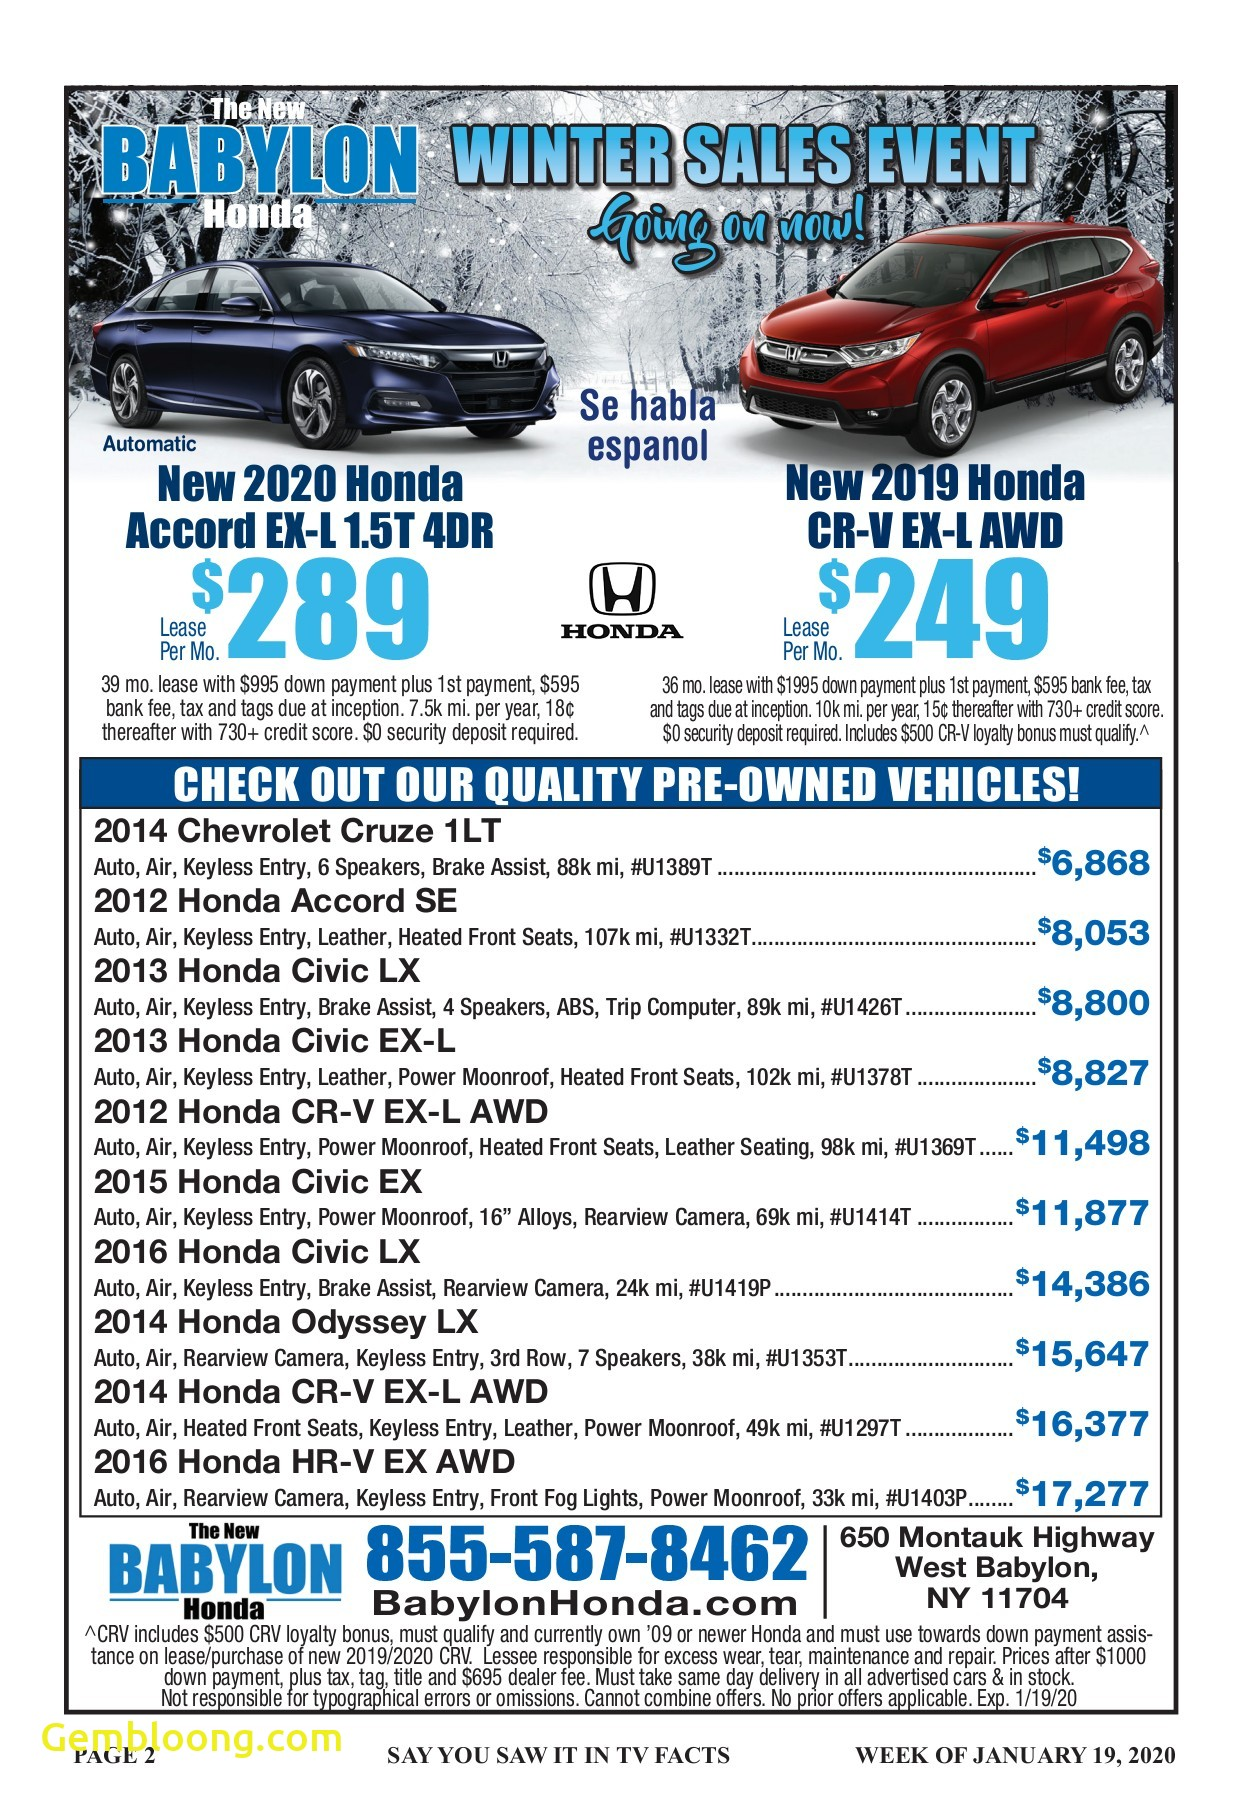 Honda Crosstour Awesome Tv Facts January 19 2020 Pages 1 36 Text Version